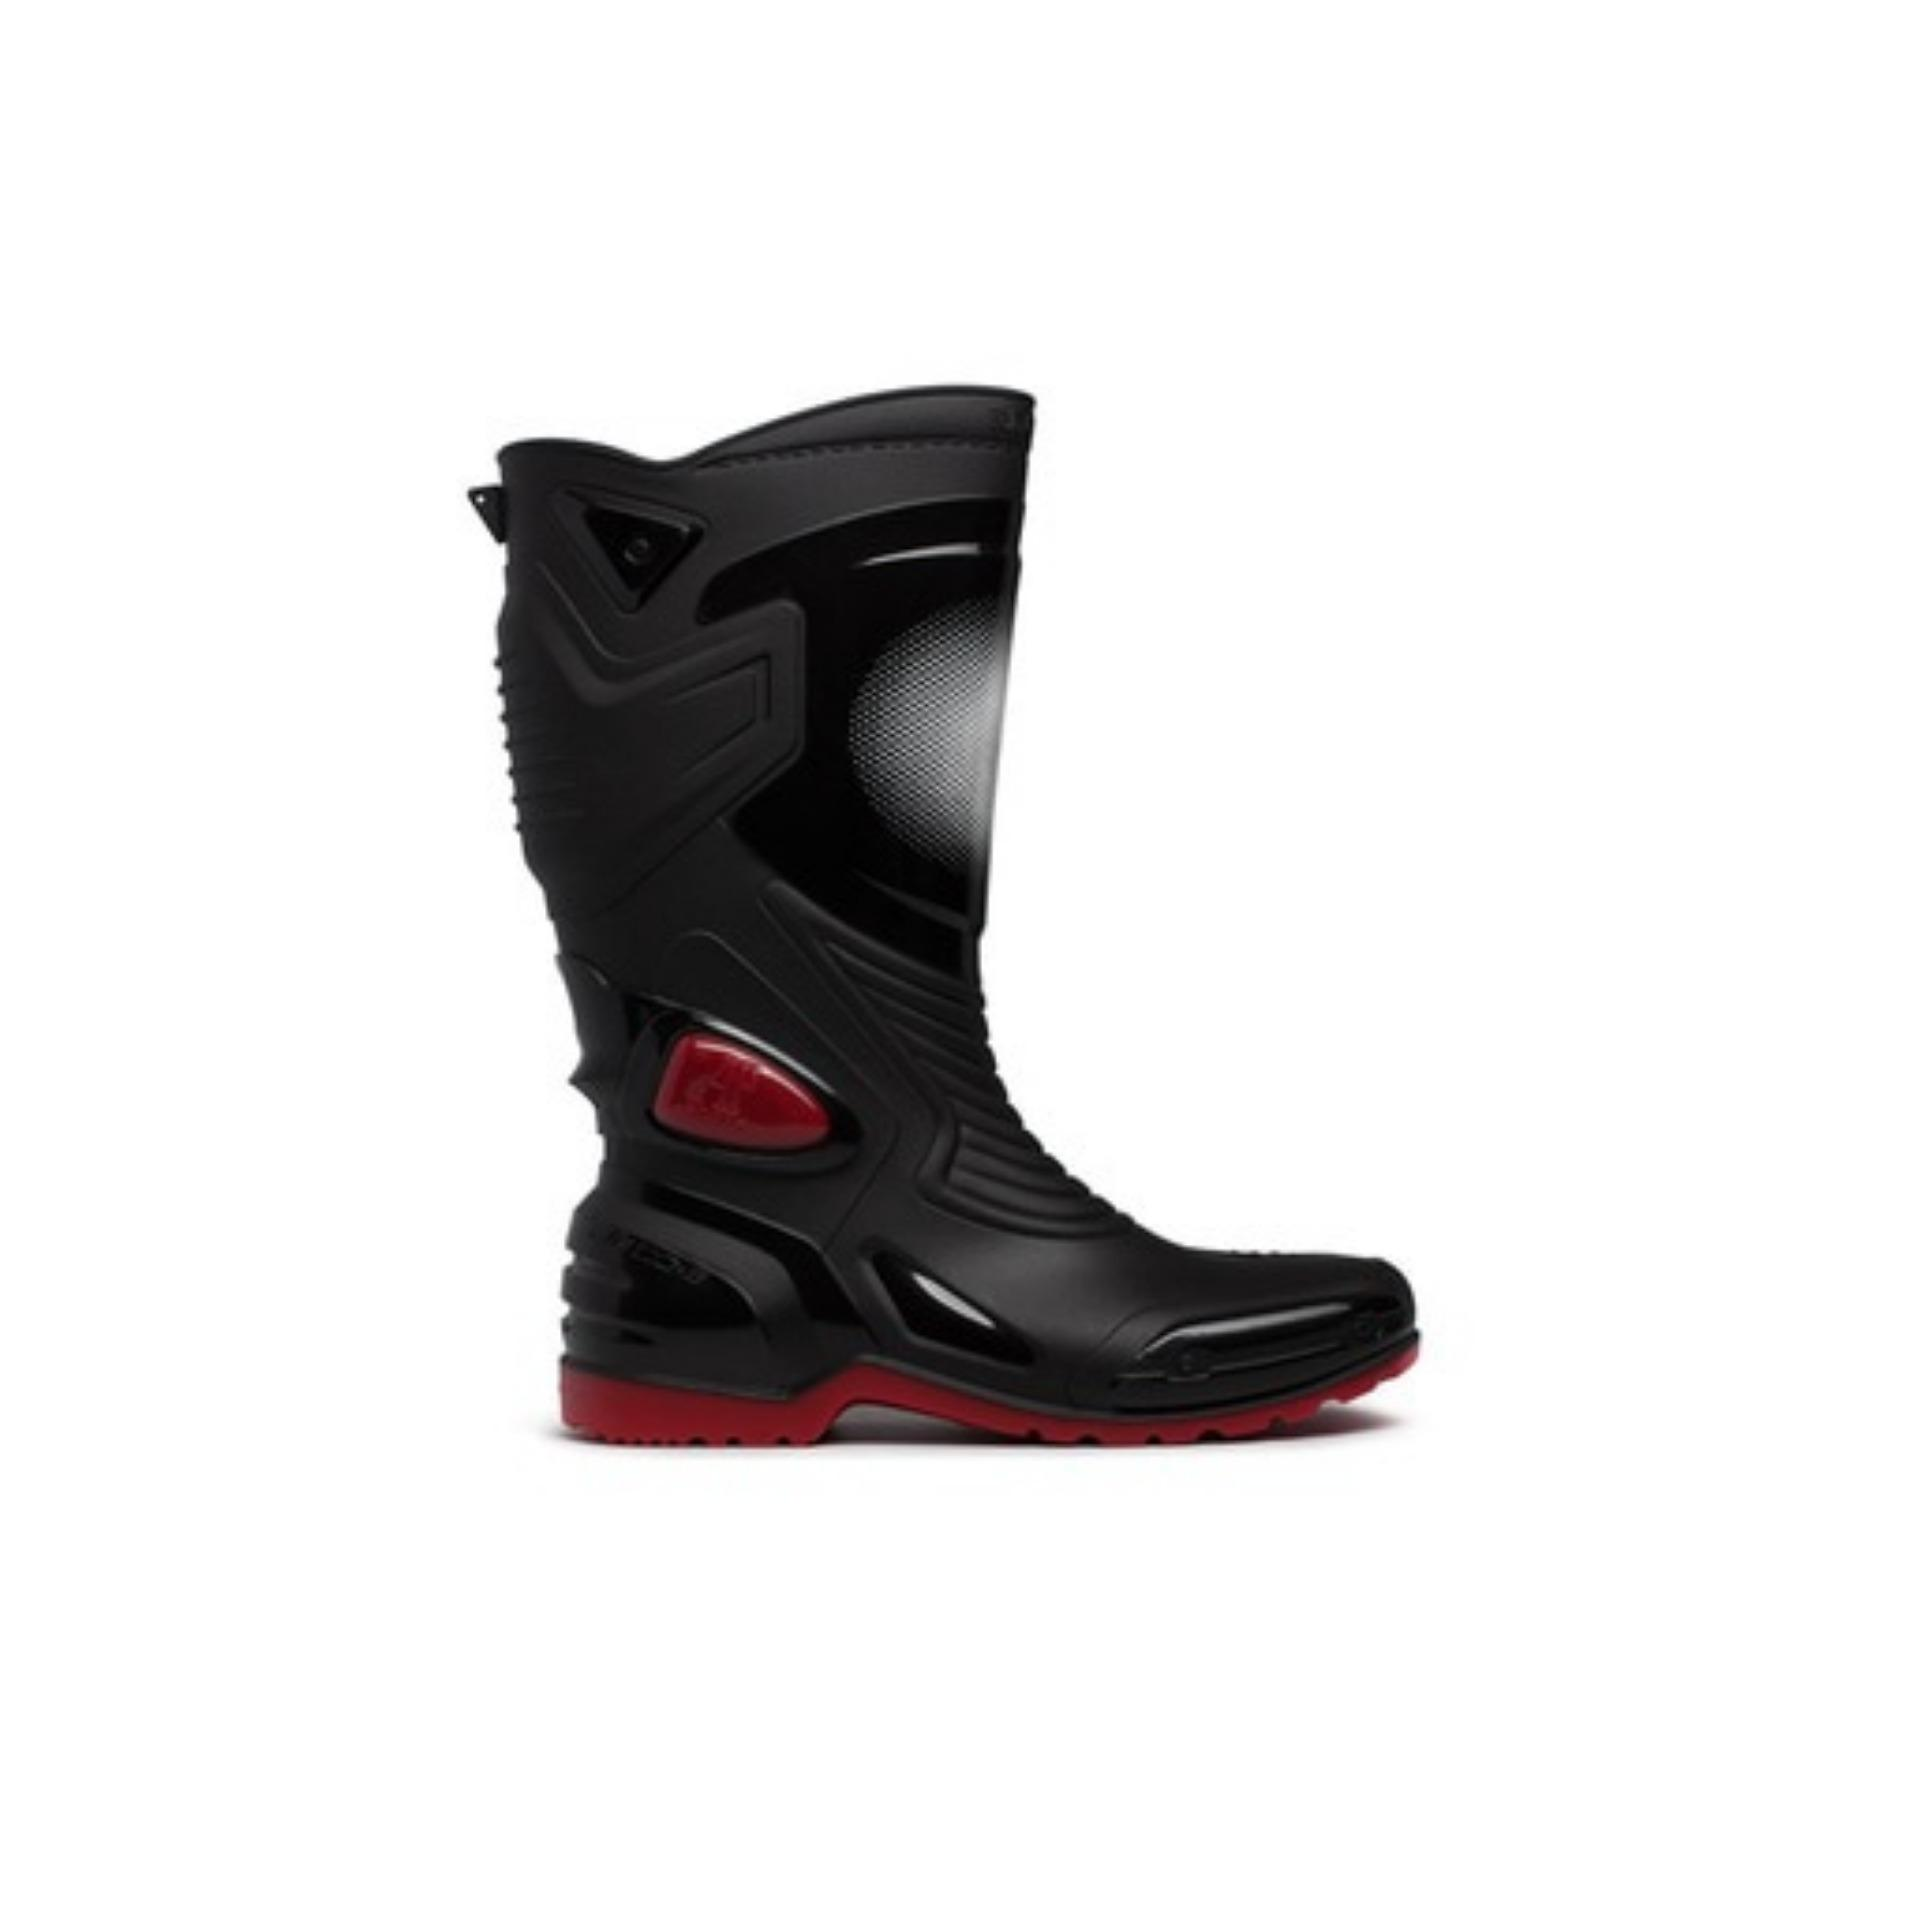 LBGS - Sepatu touring cross trail balap drag Anti Air AP BOOTS MOTO 3 MOTO